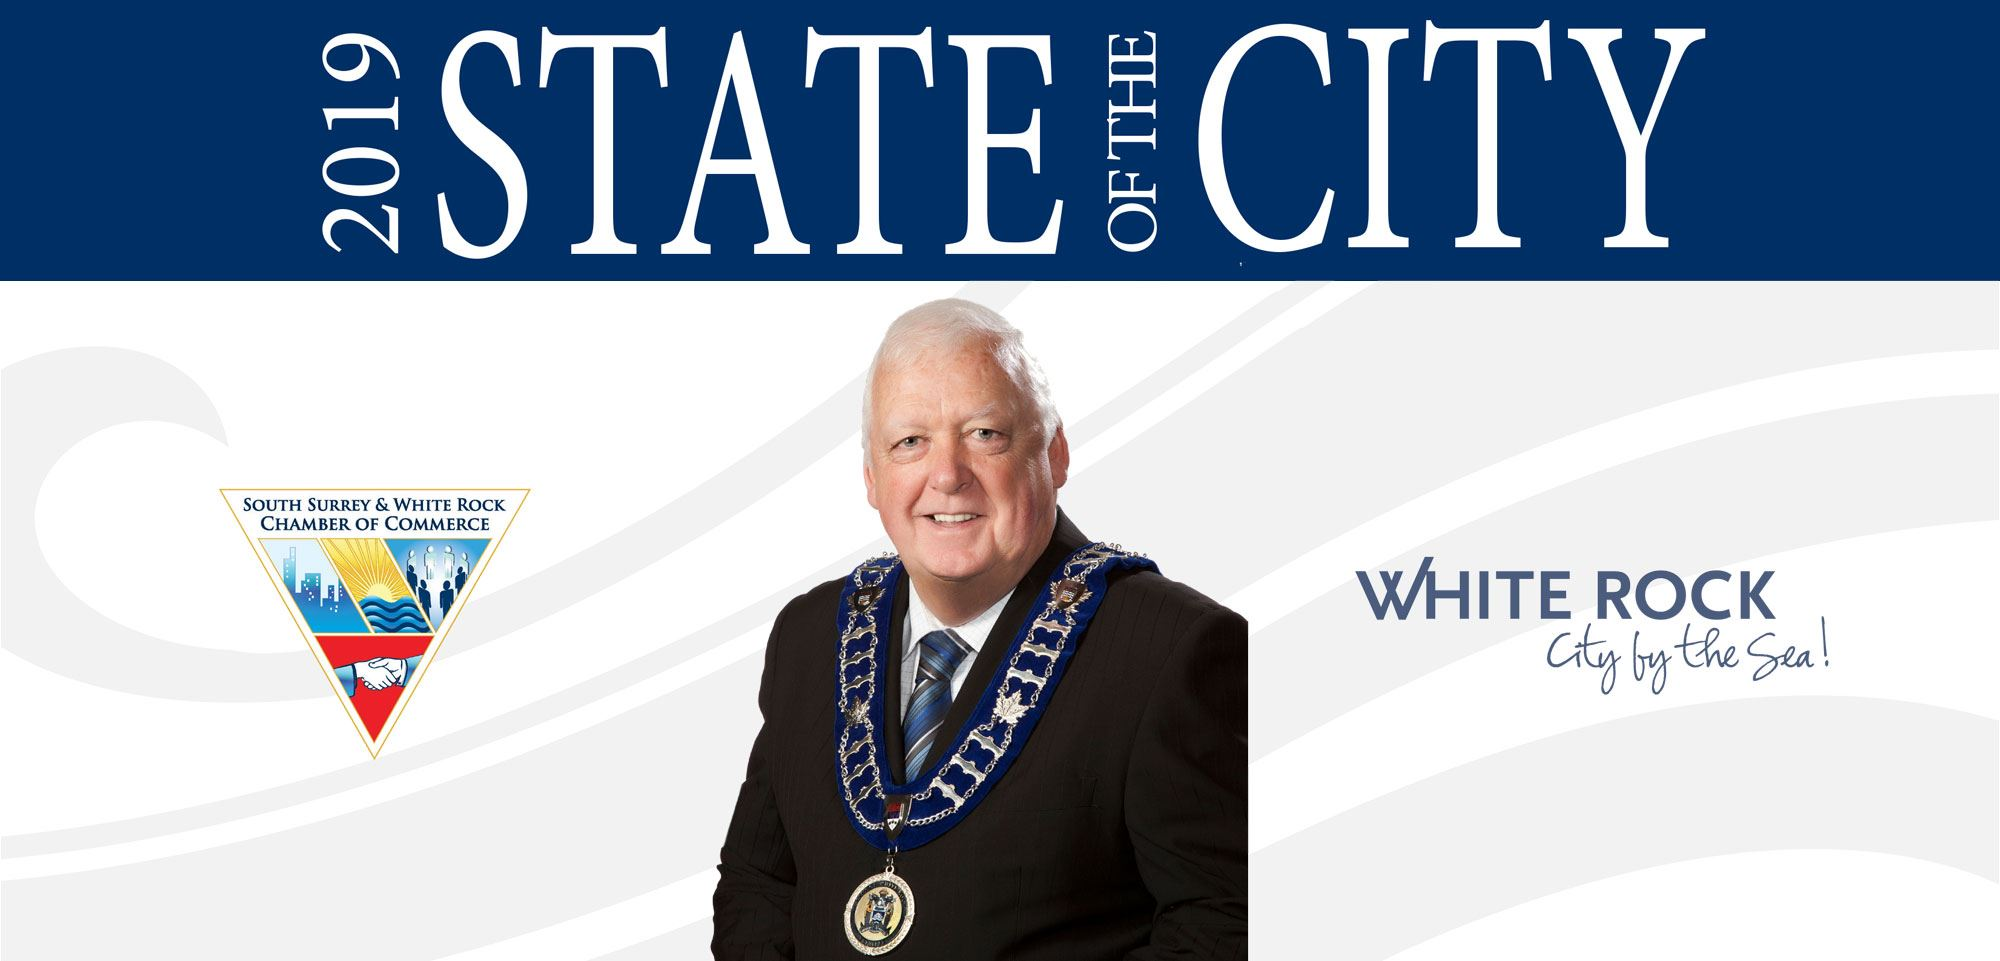 2019 State of the City and Mayoral Address to the Community